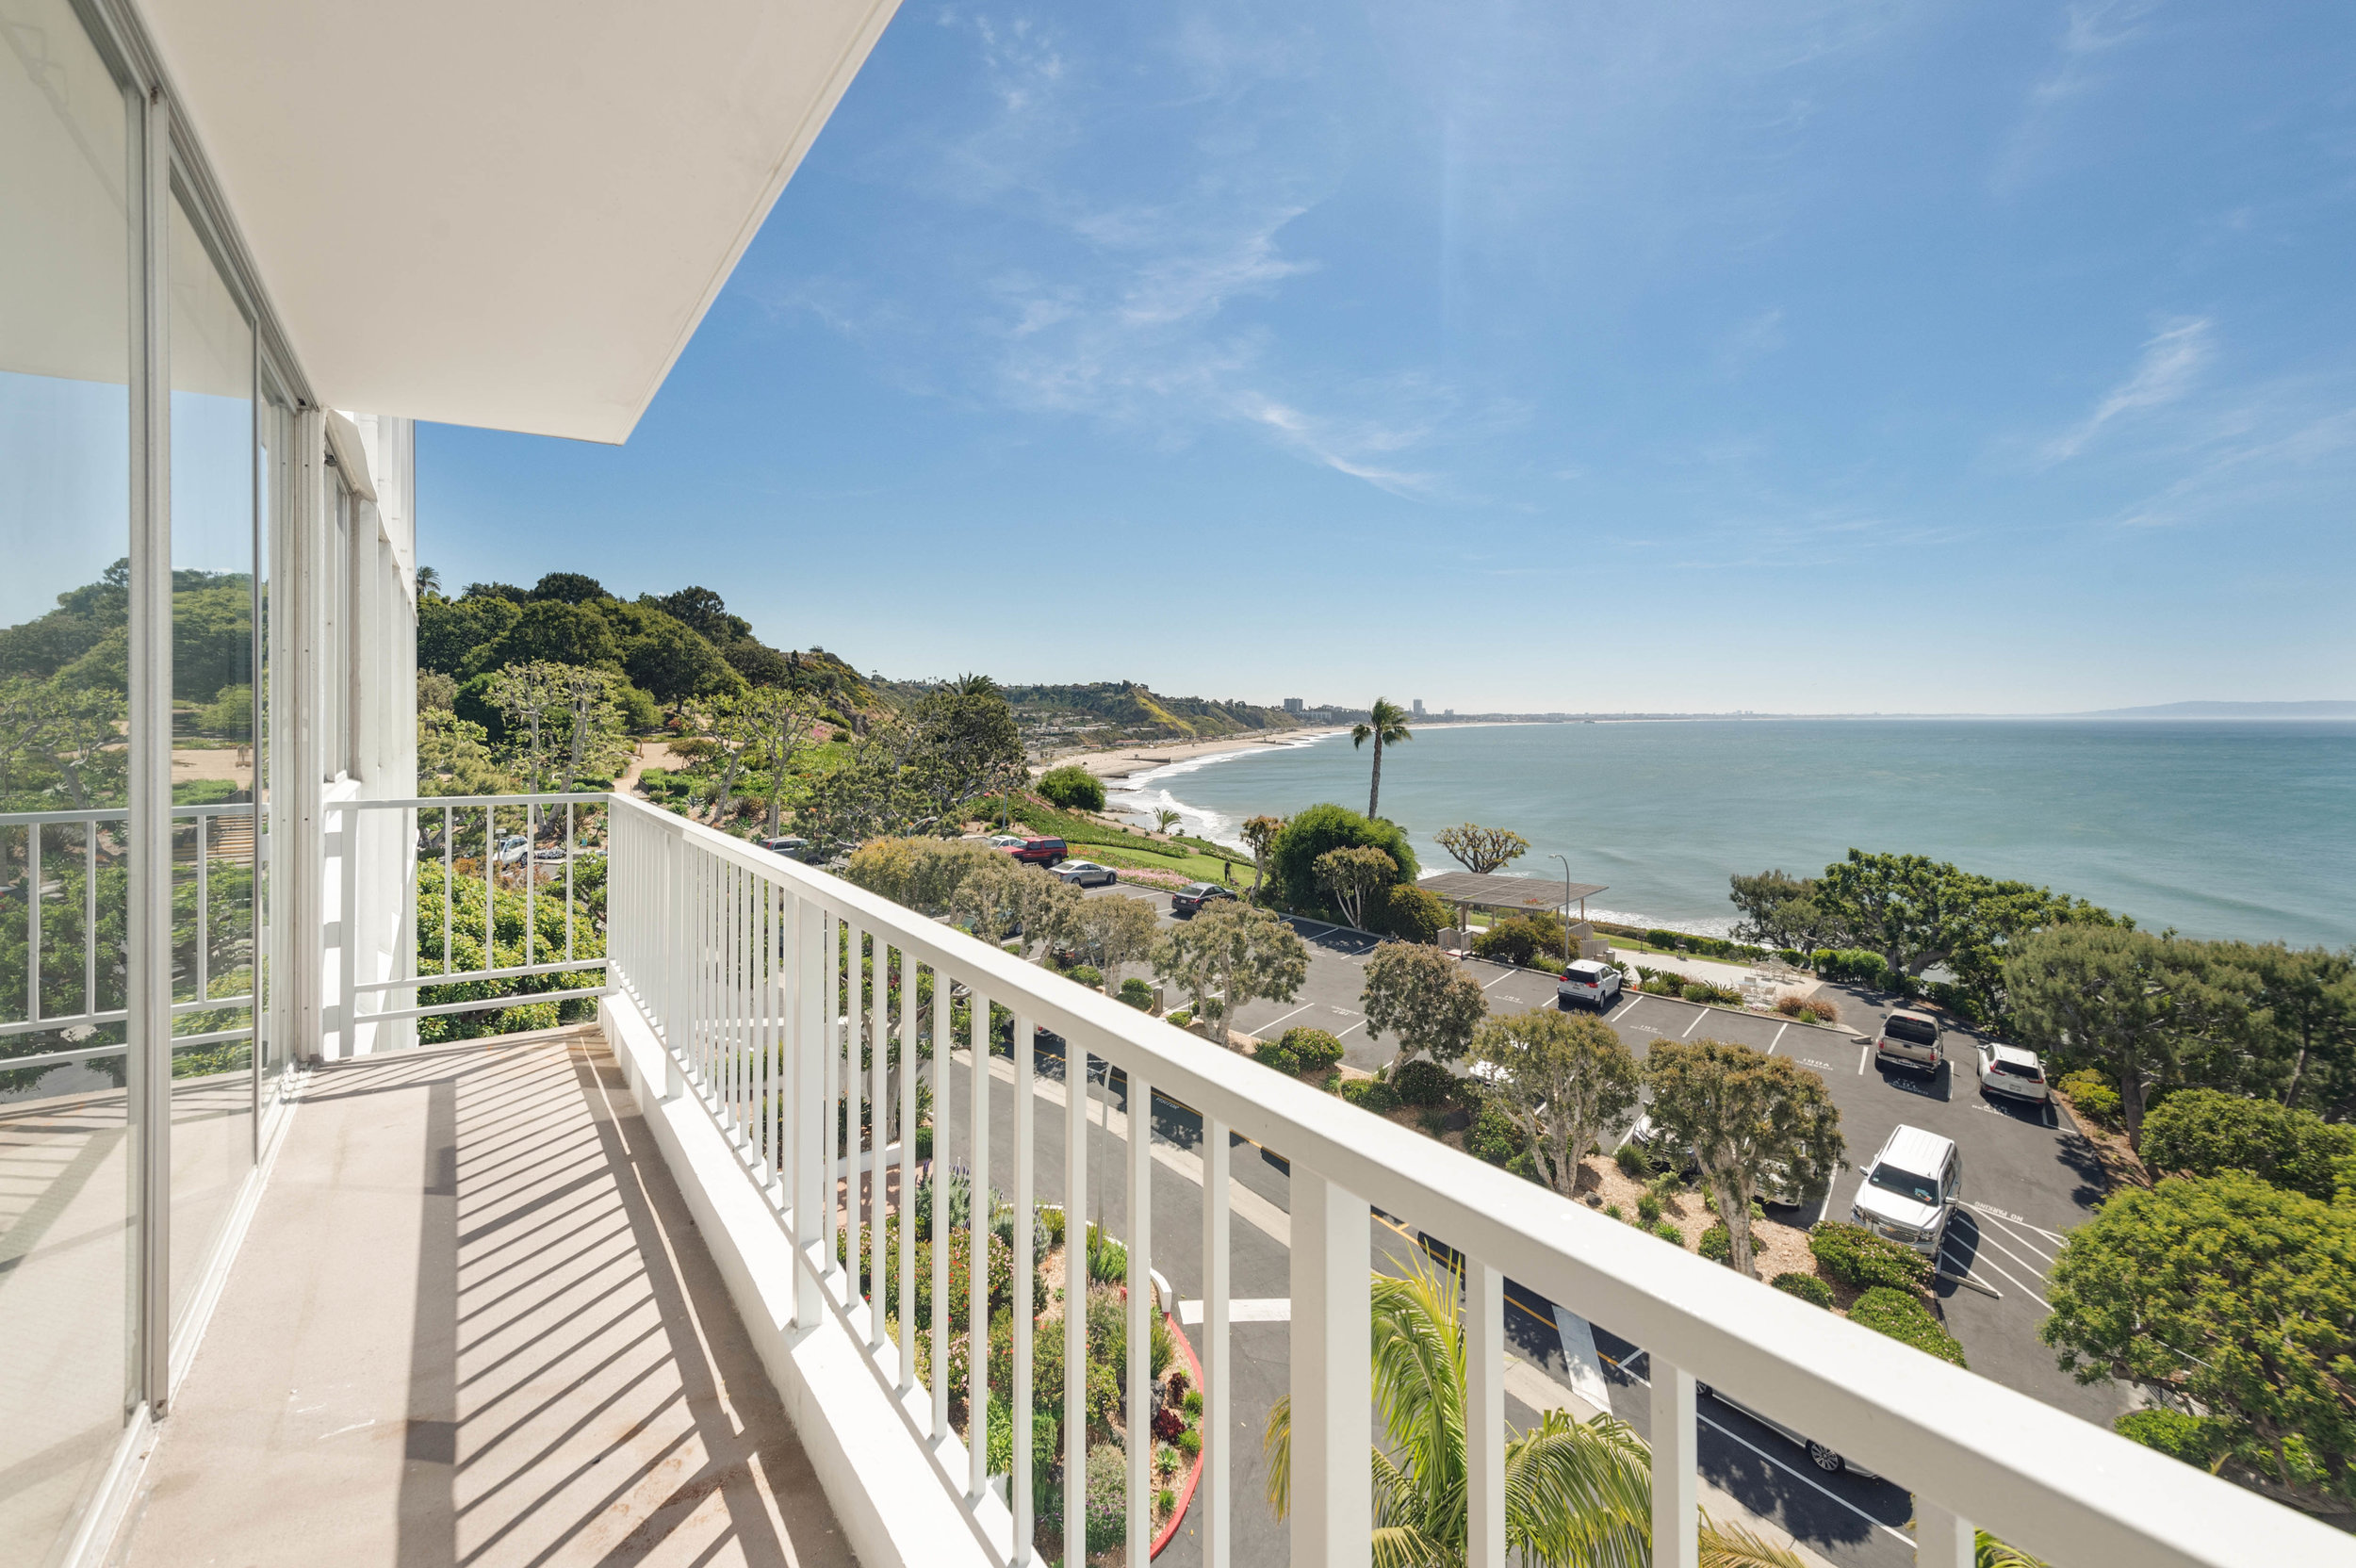 001 Ocean View Deck 17350 West Sunset Boulevard For Sale Lease The Malibu Life Team Luxury Real Estate.jpg